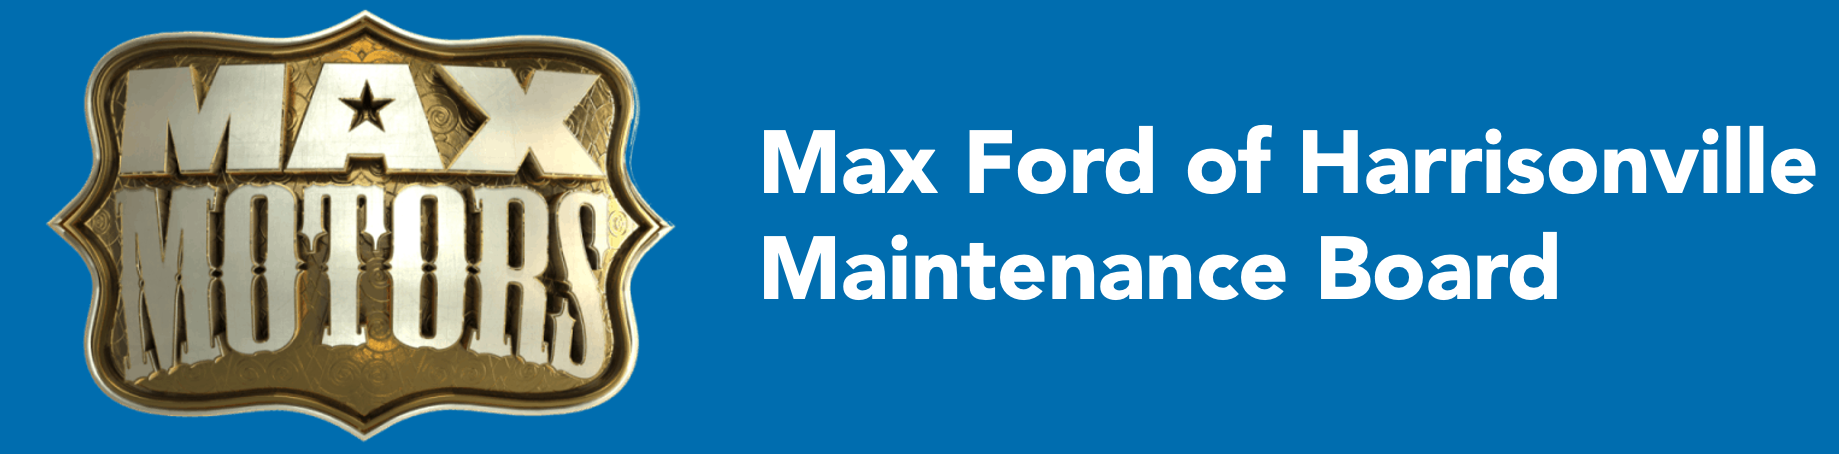 Max Ford